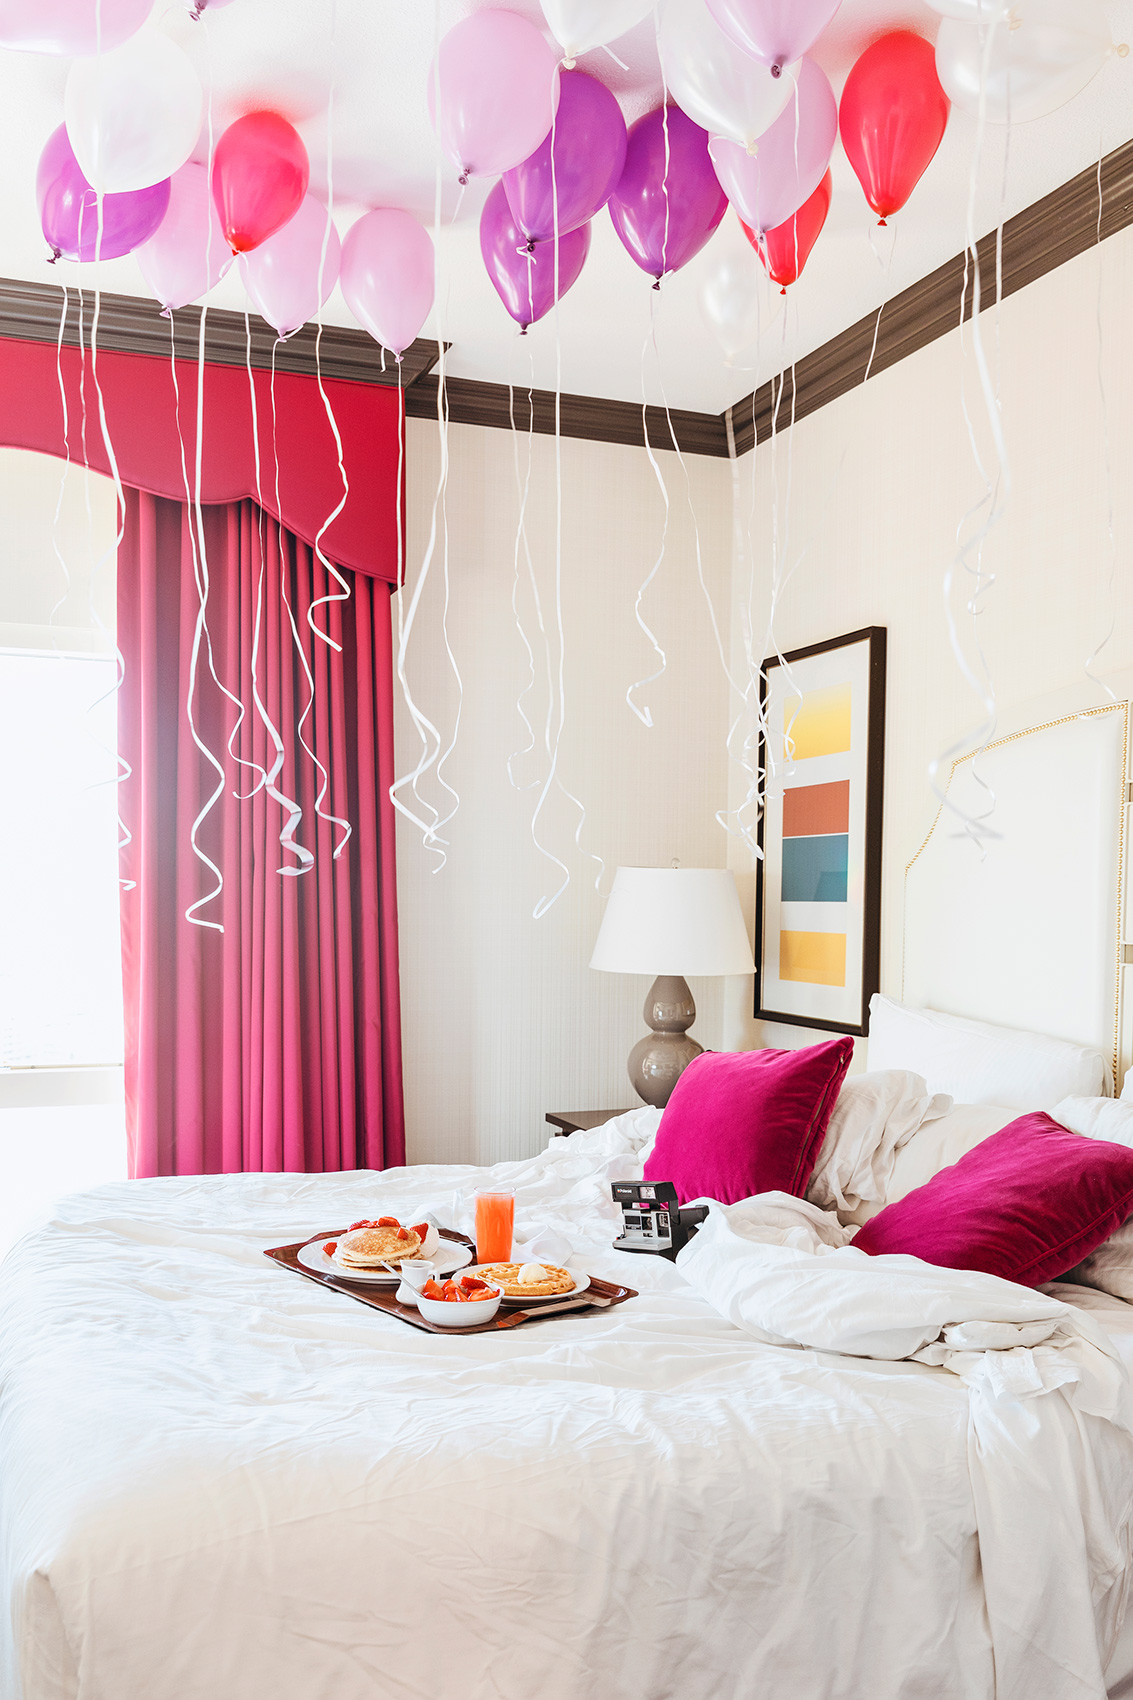 Breakfast in bed with balloons. Kimberly Genevieve lifestyle photographer Los Angeles